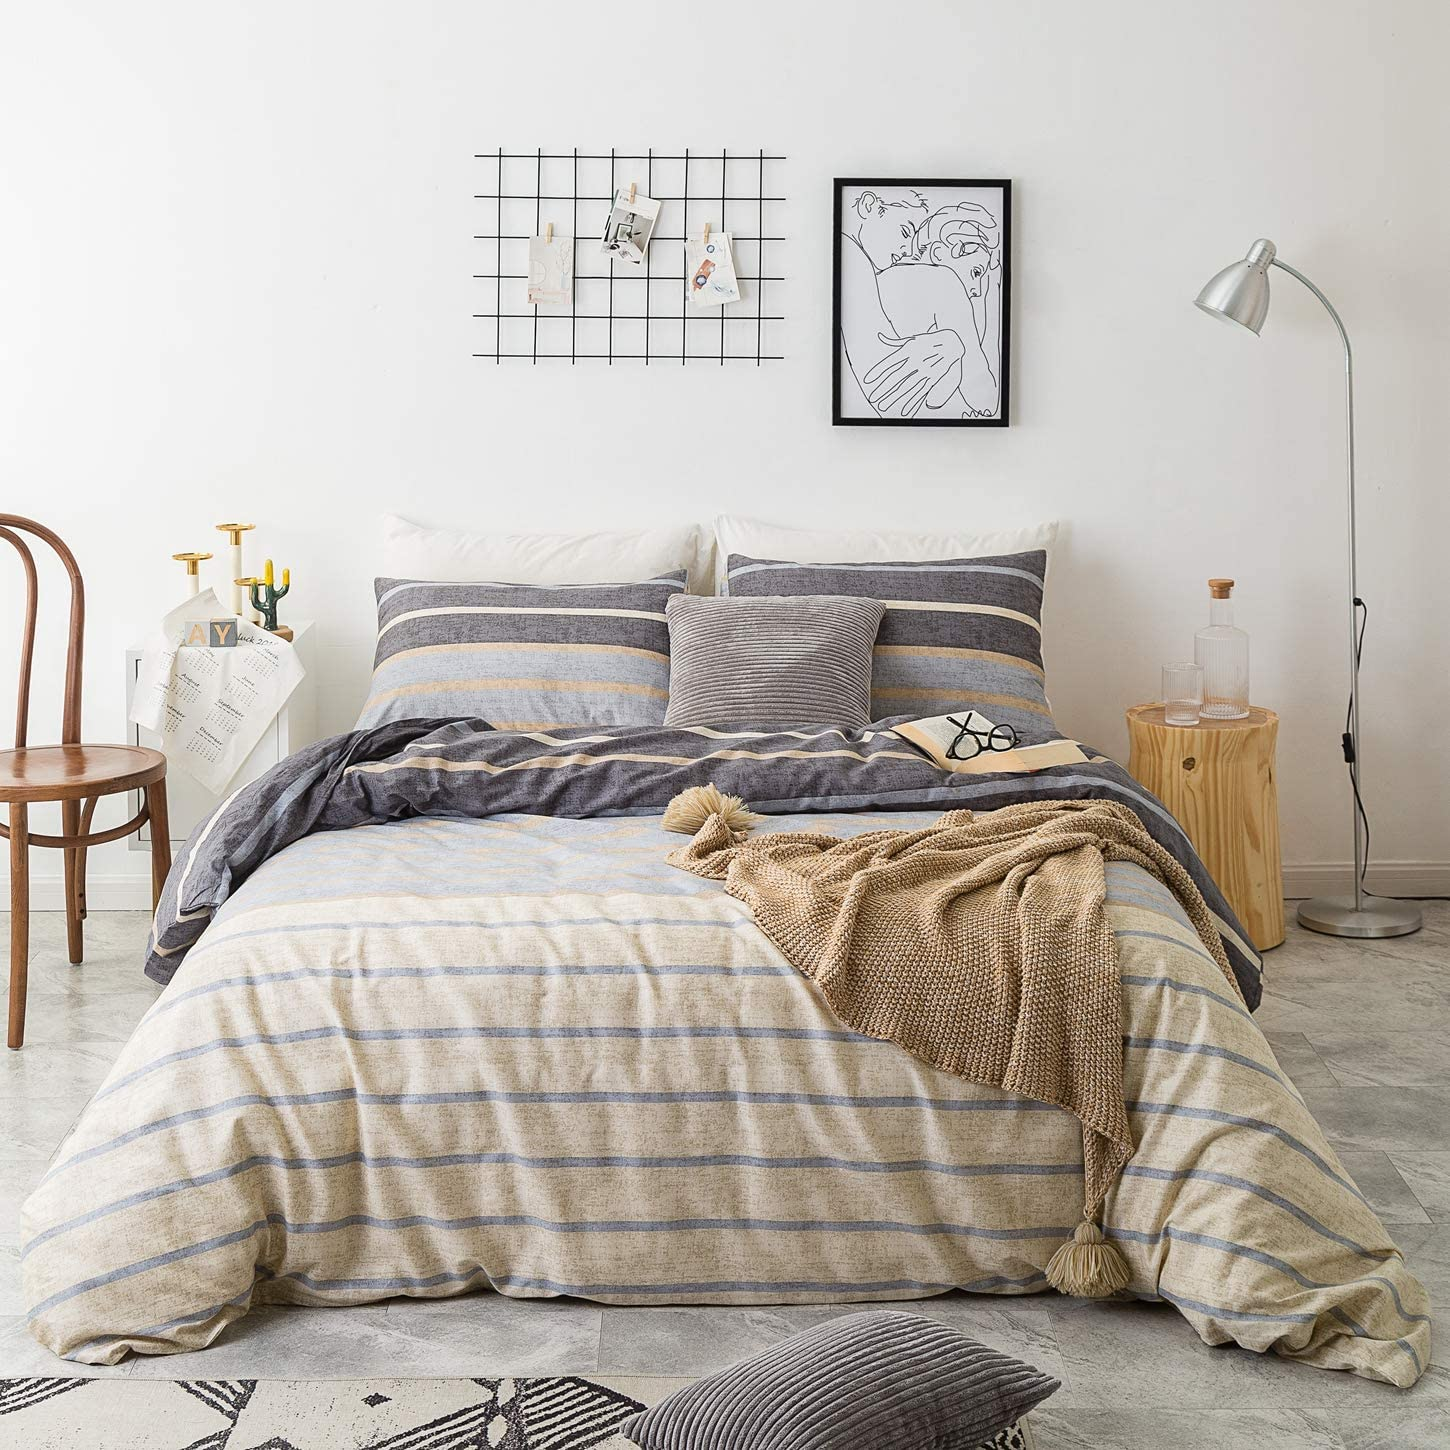 SUSYBAO 3 Piece Duvet Cover Set 100% Natural Cotton King Size Khaki Stirped Bedding Set 1 Reversible Gray Stripes Duvet Cover with Zipper Ties 2 Pillowcases Luxury Quality Soft Comfortable Durable